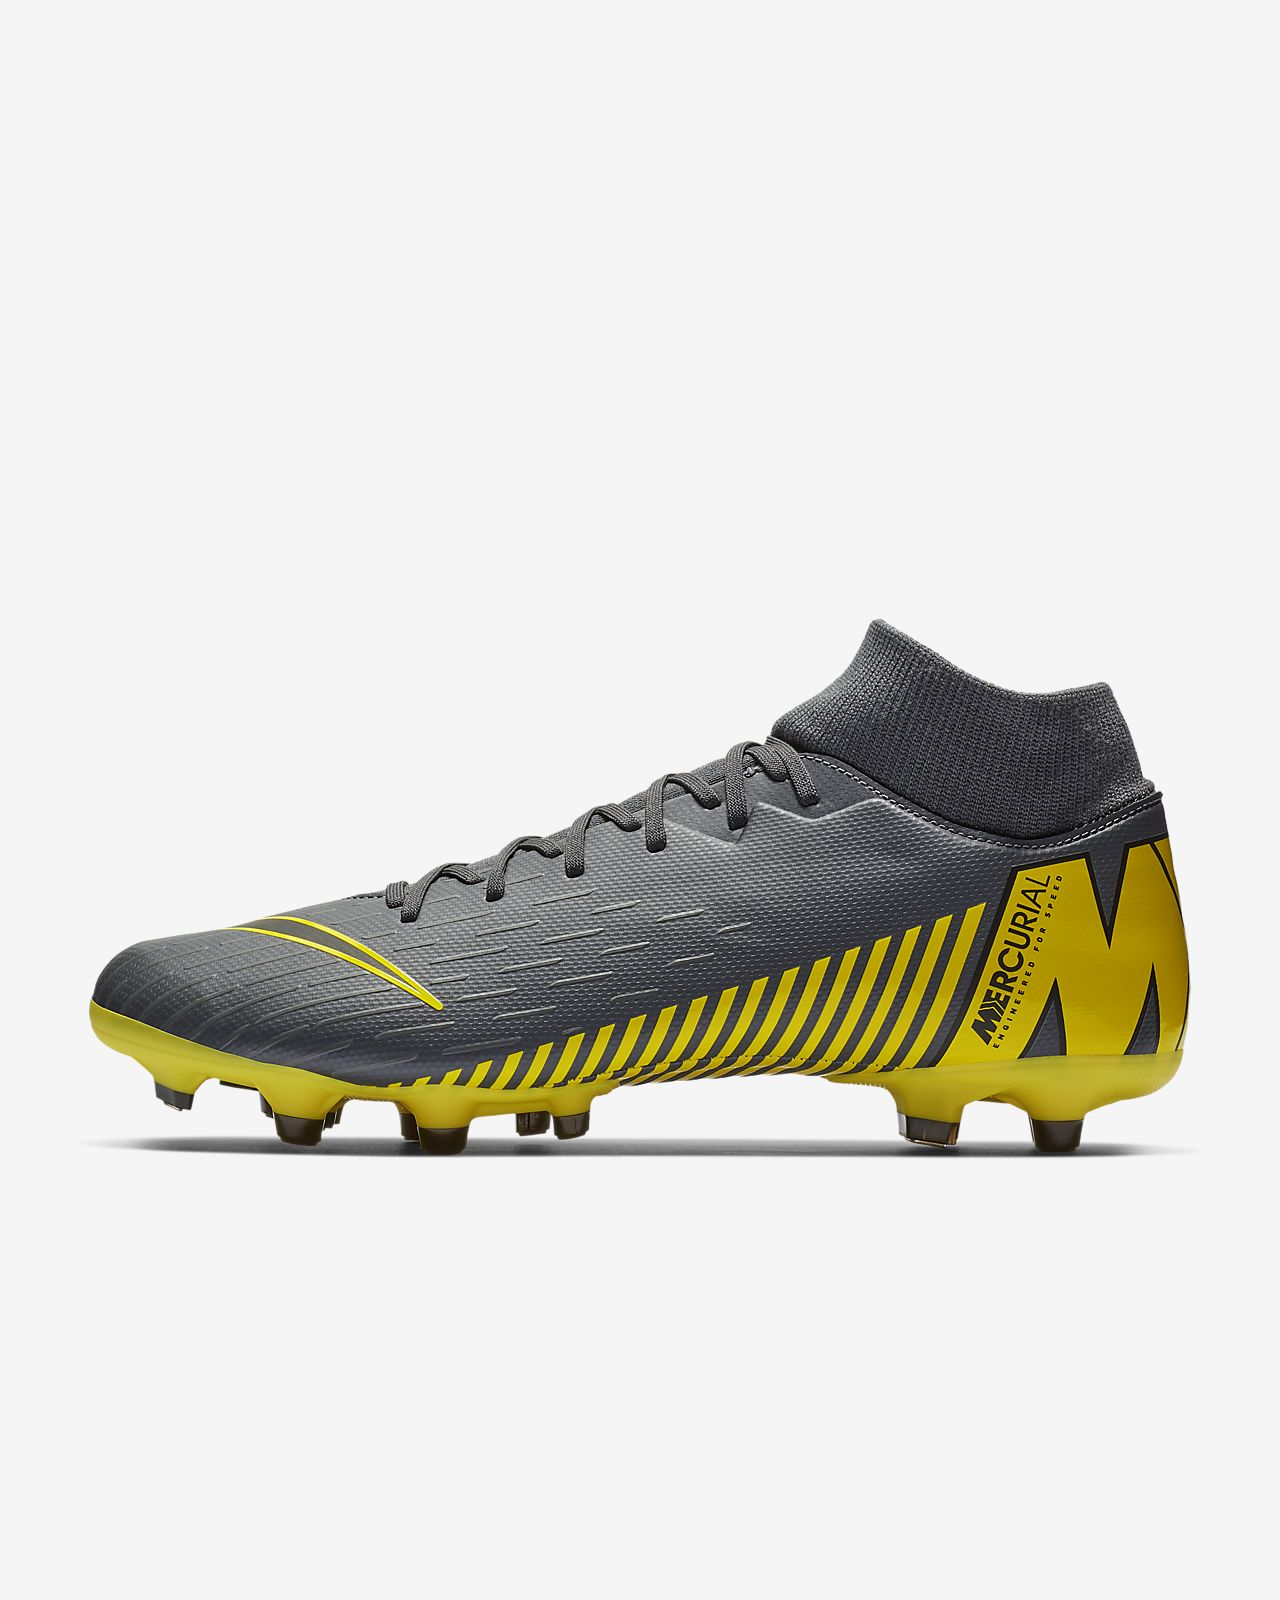 promo code 1e3c4 4c099 ... Chaussure de football multi-terrains à crampons Nike Mercurial Superfly  6 Academy MG